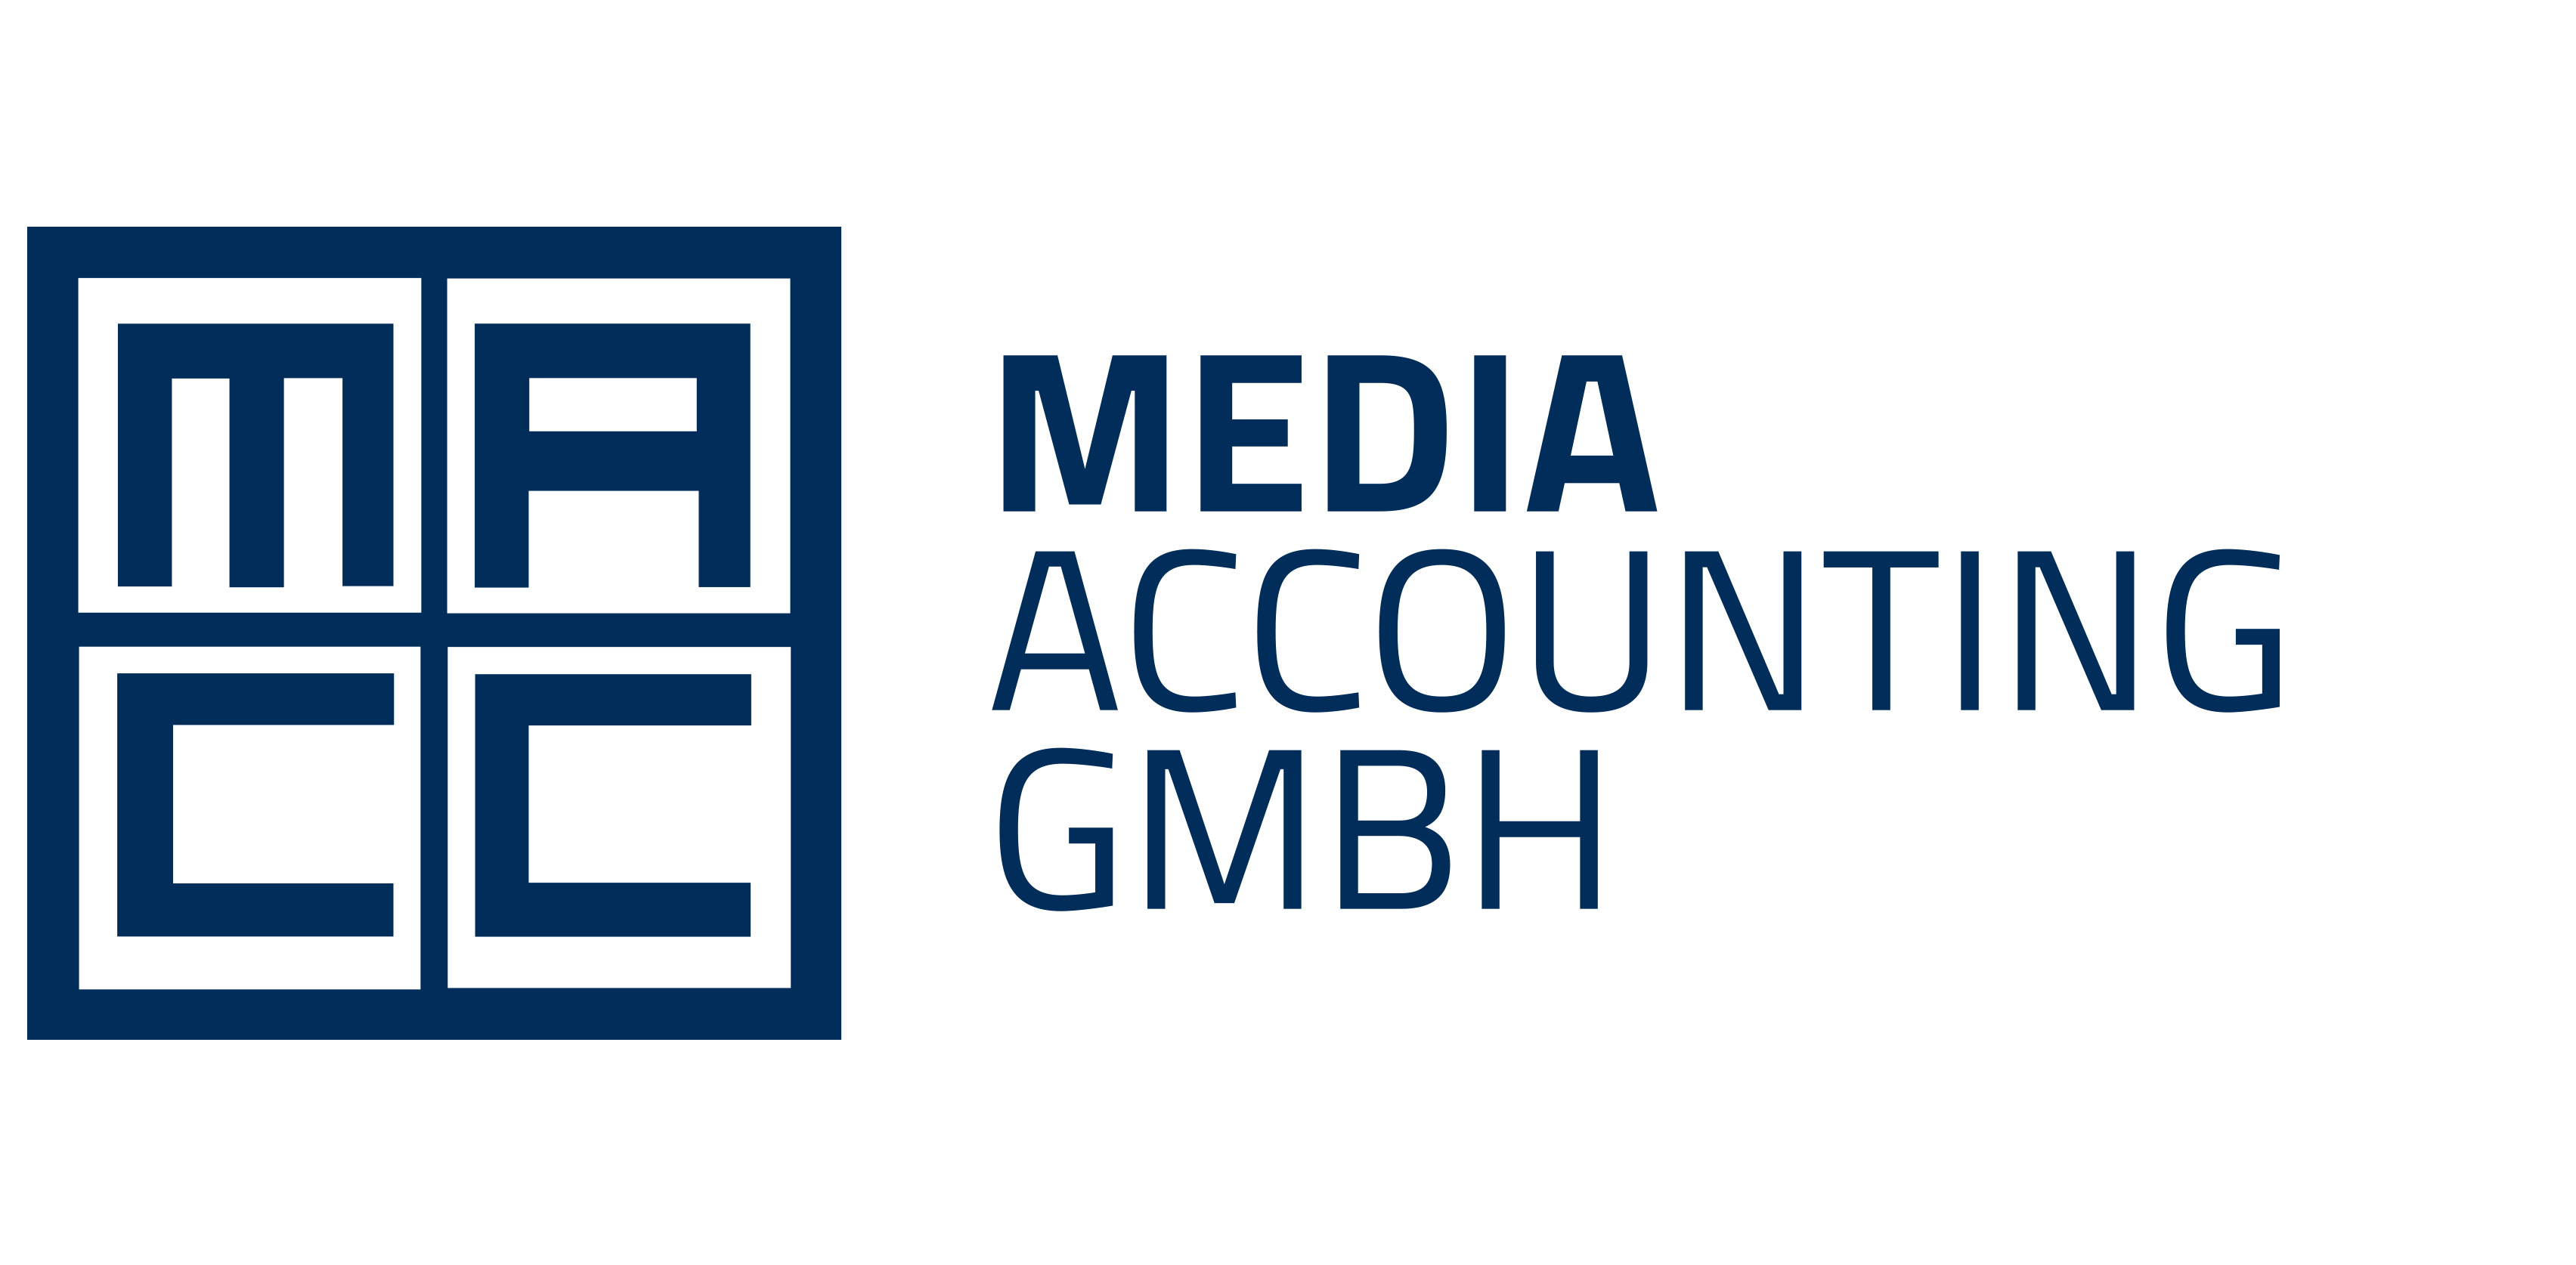 MACC Media Accounting GmbH